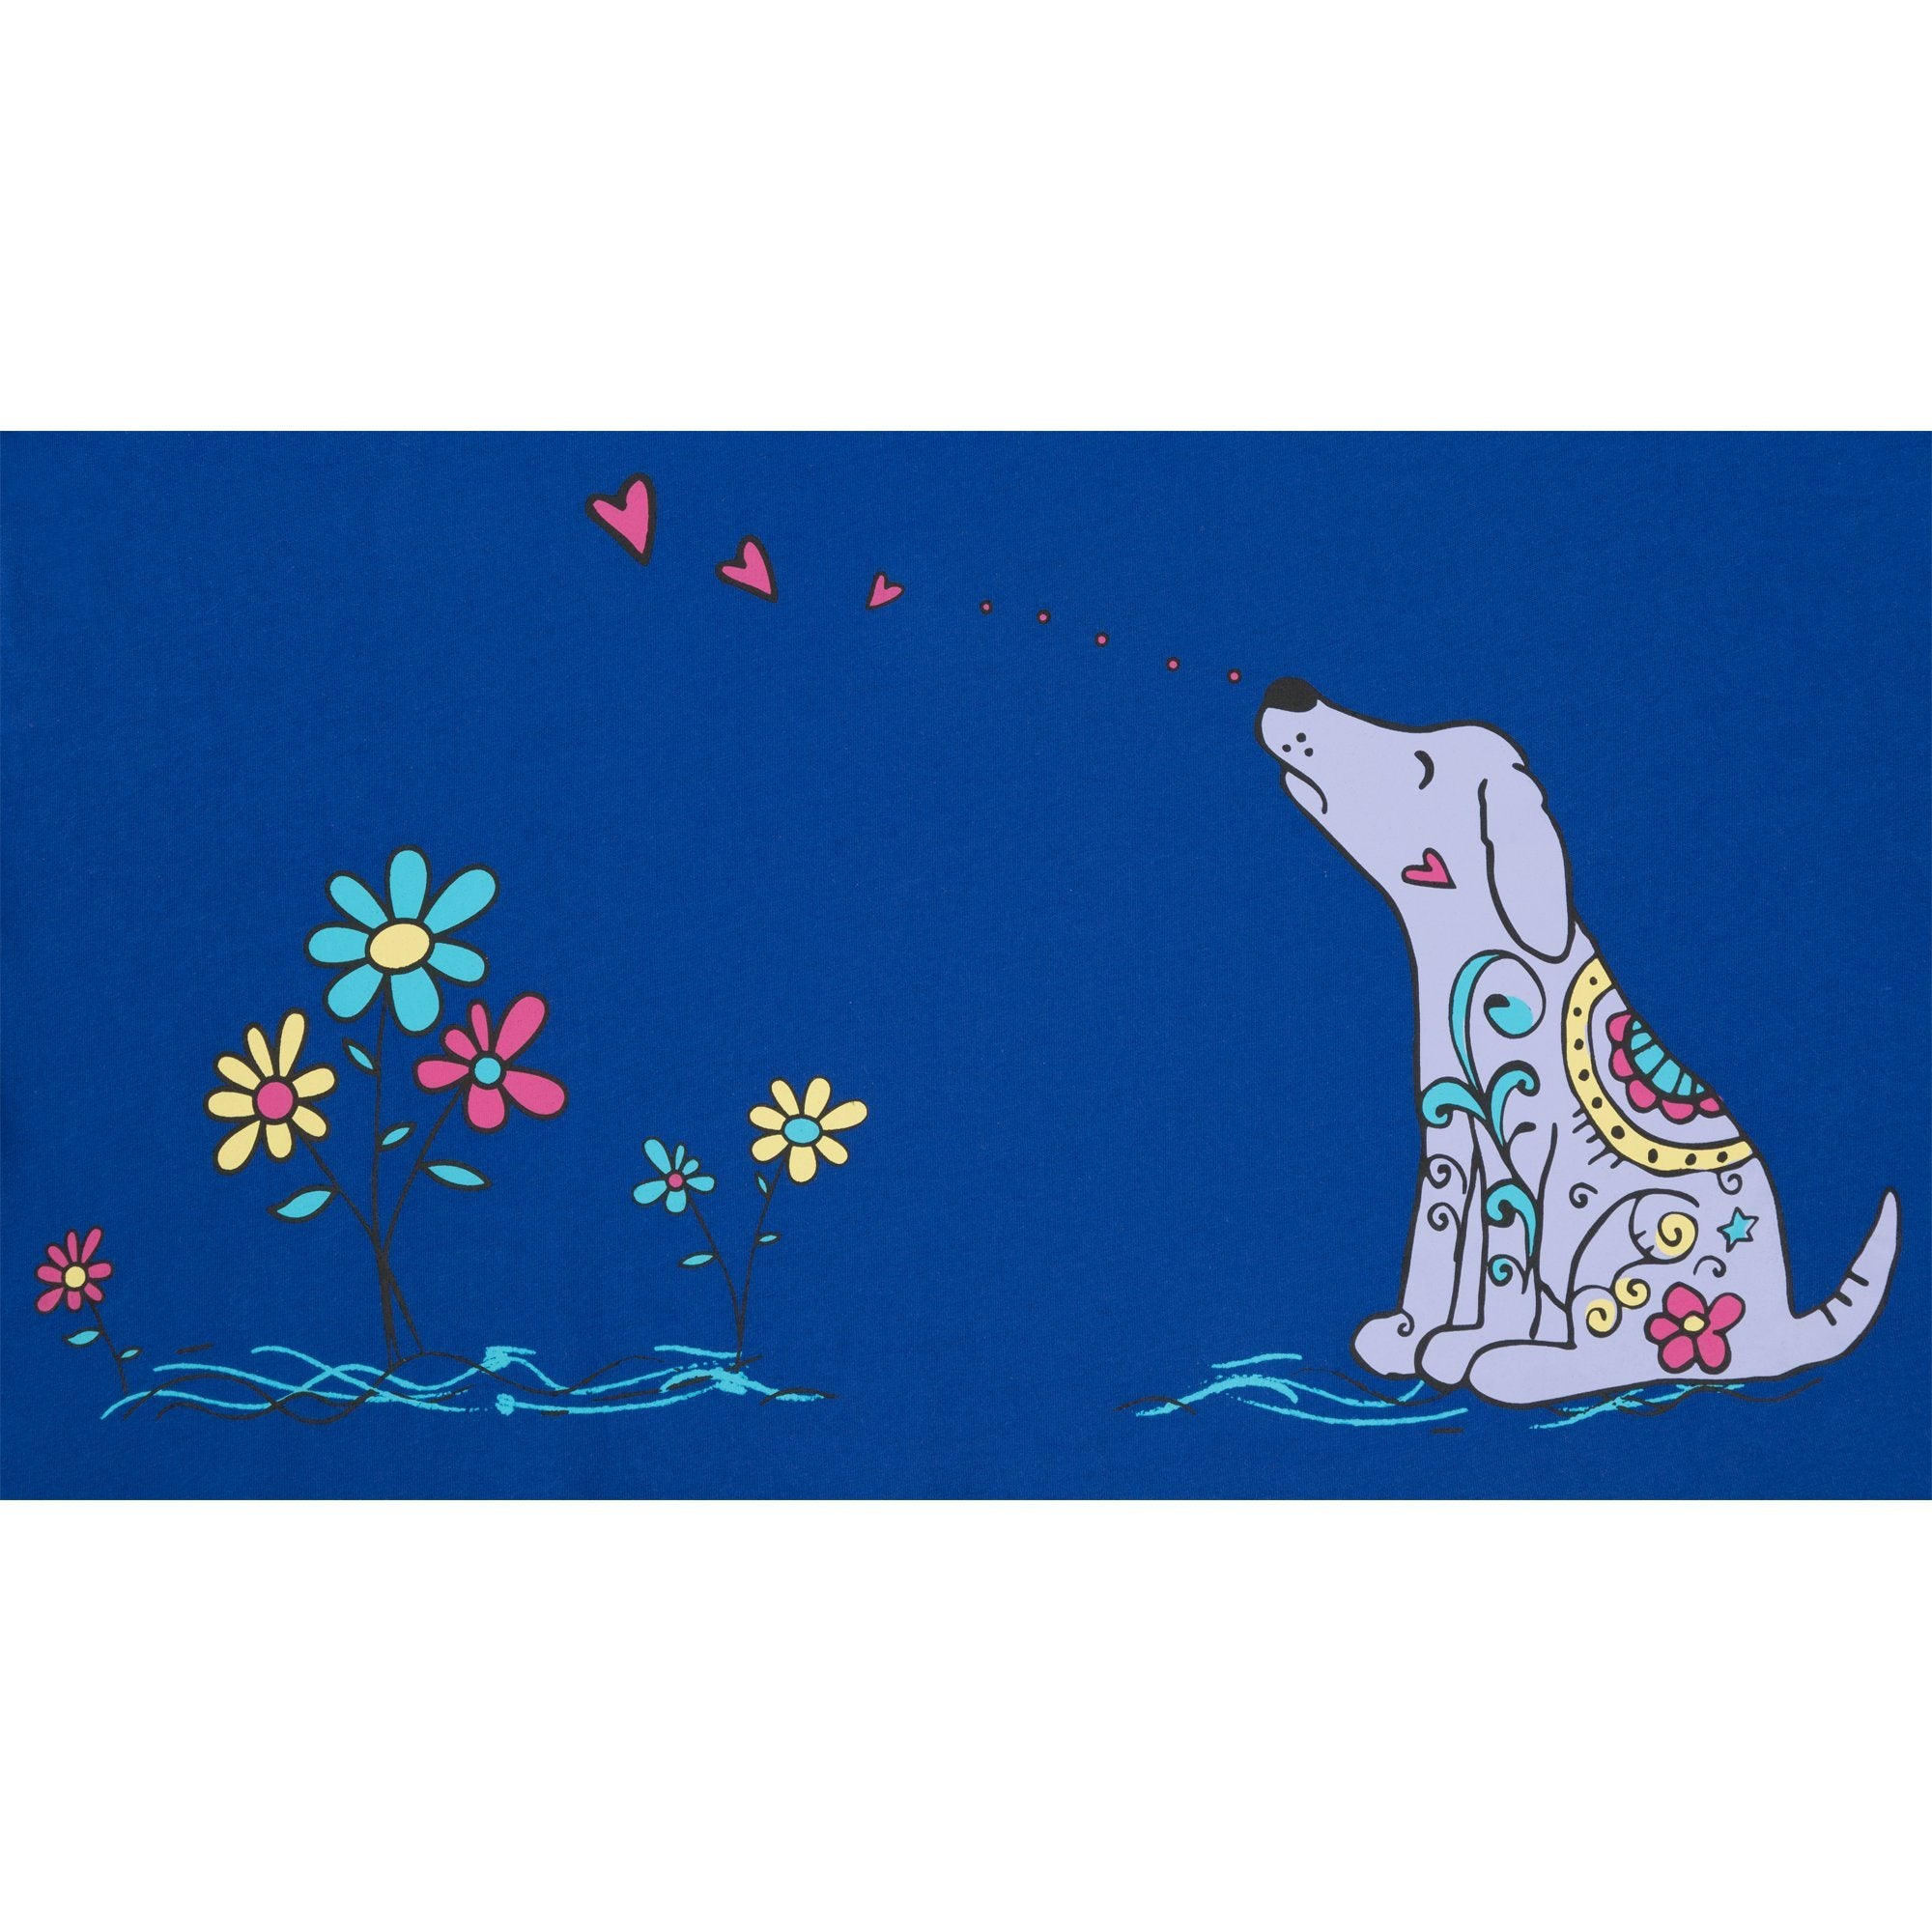 7a7accacc7 ... Smell The Flowers Dog Cat Nightshirt